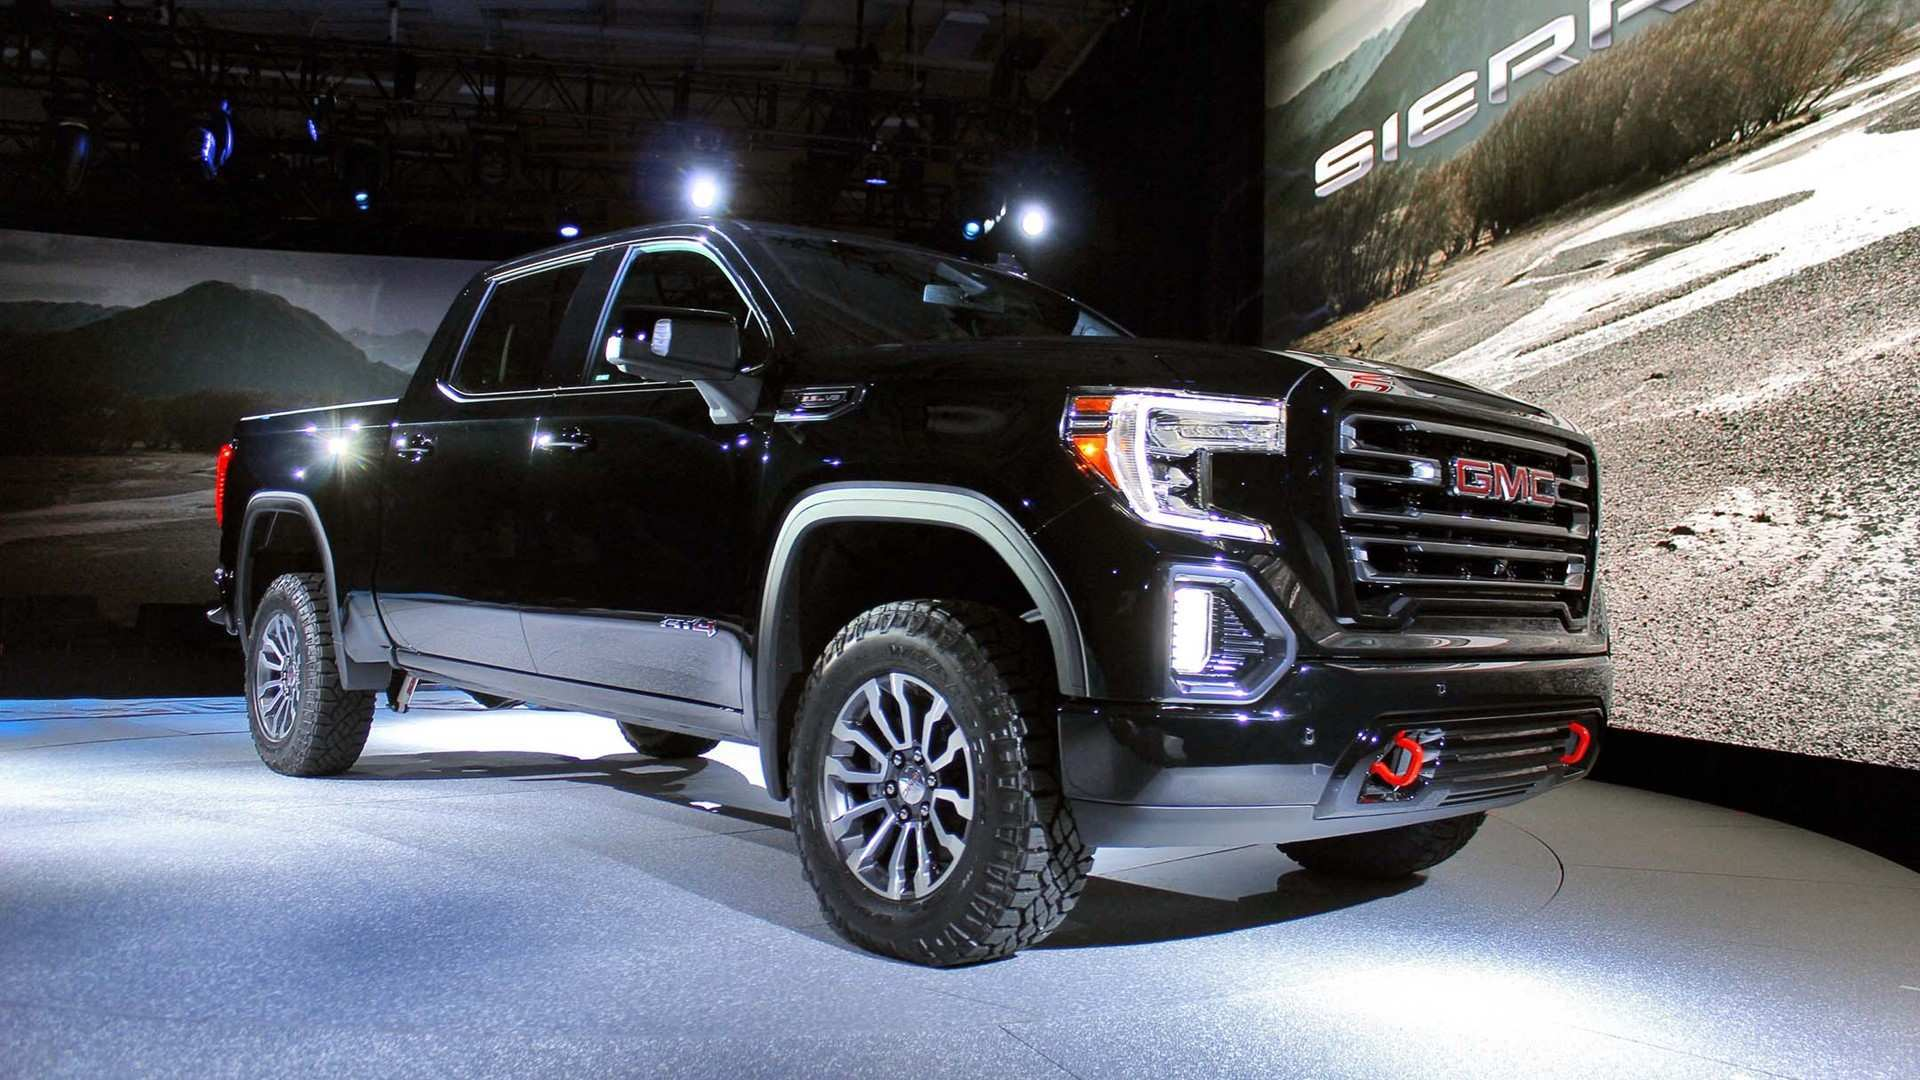 49 All New New 2019 Gmc Sierra At4 Interior Exterior And Review History with New 2019 Gmc Sierra At4 Interior Exterior And Review